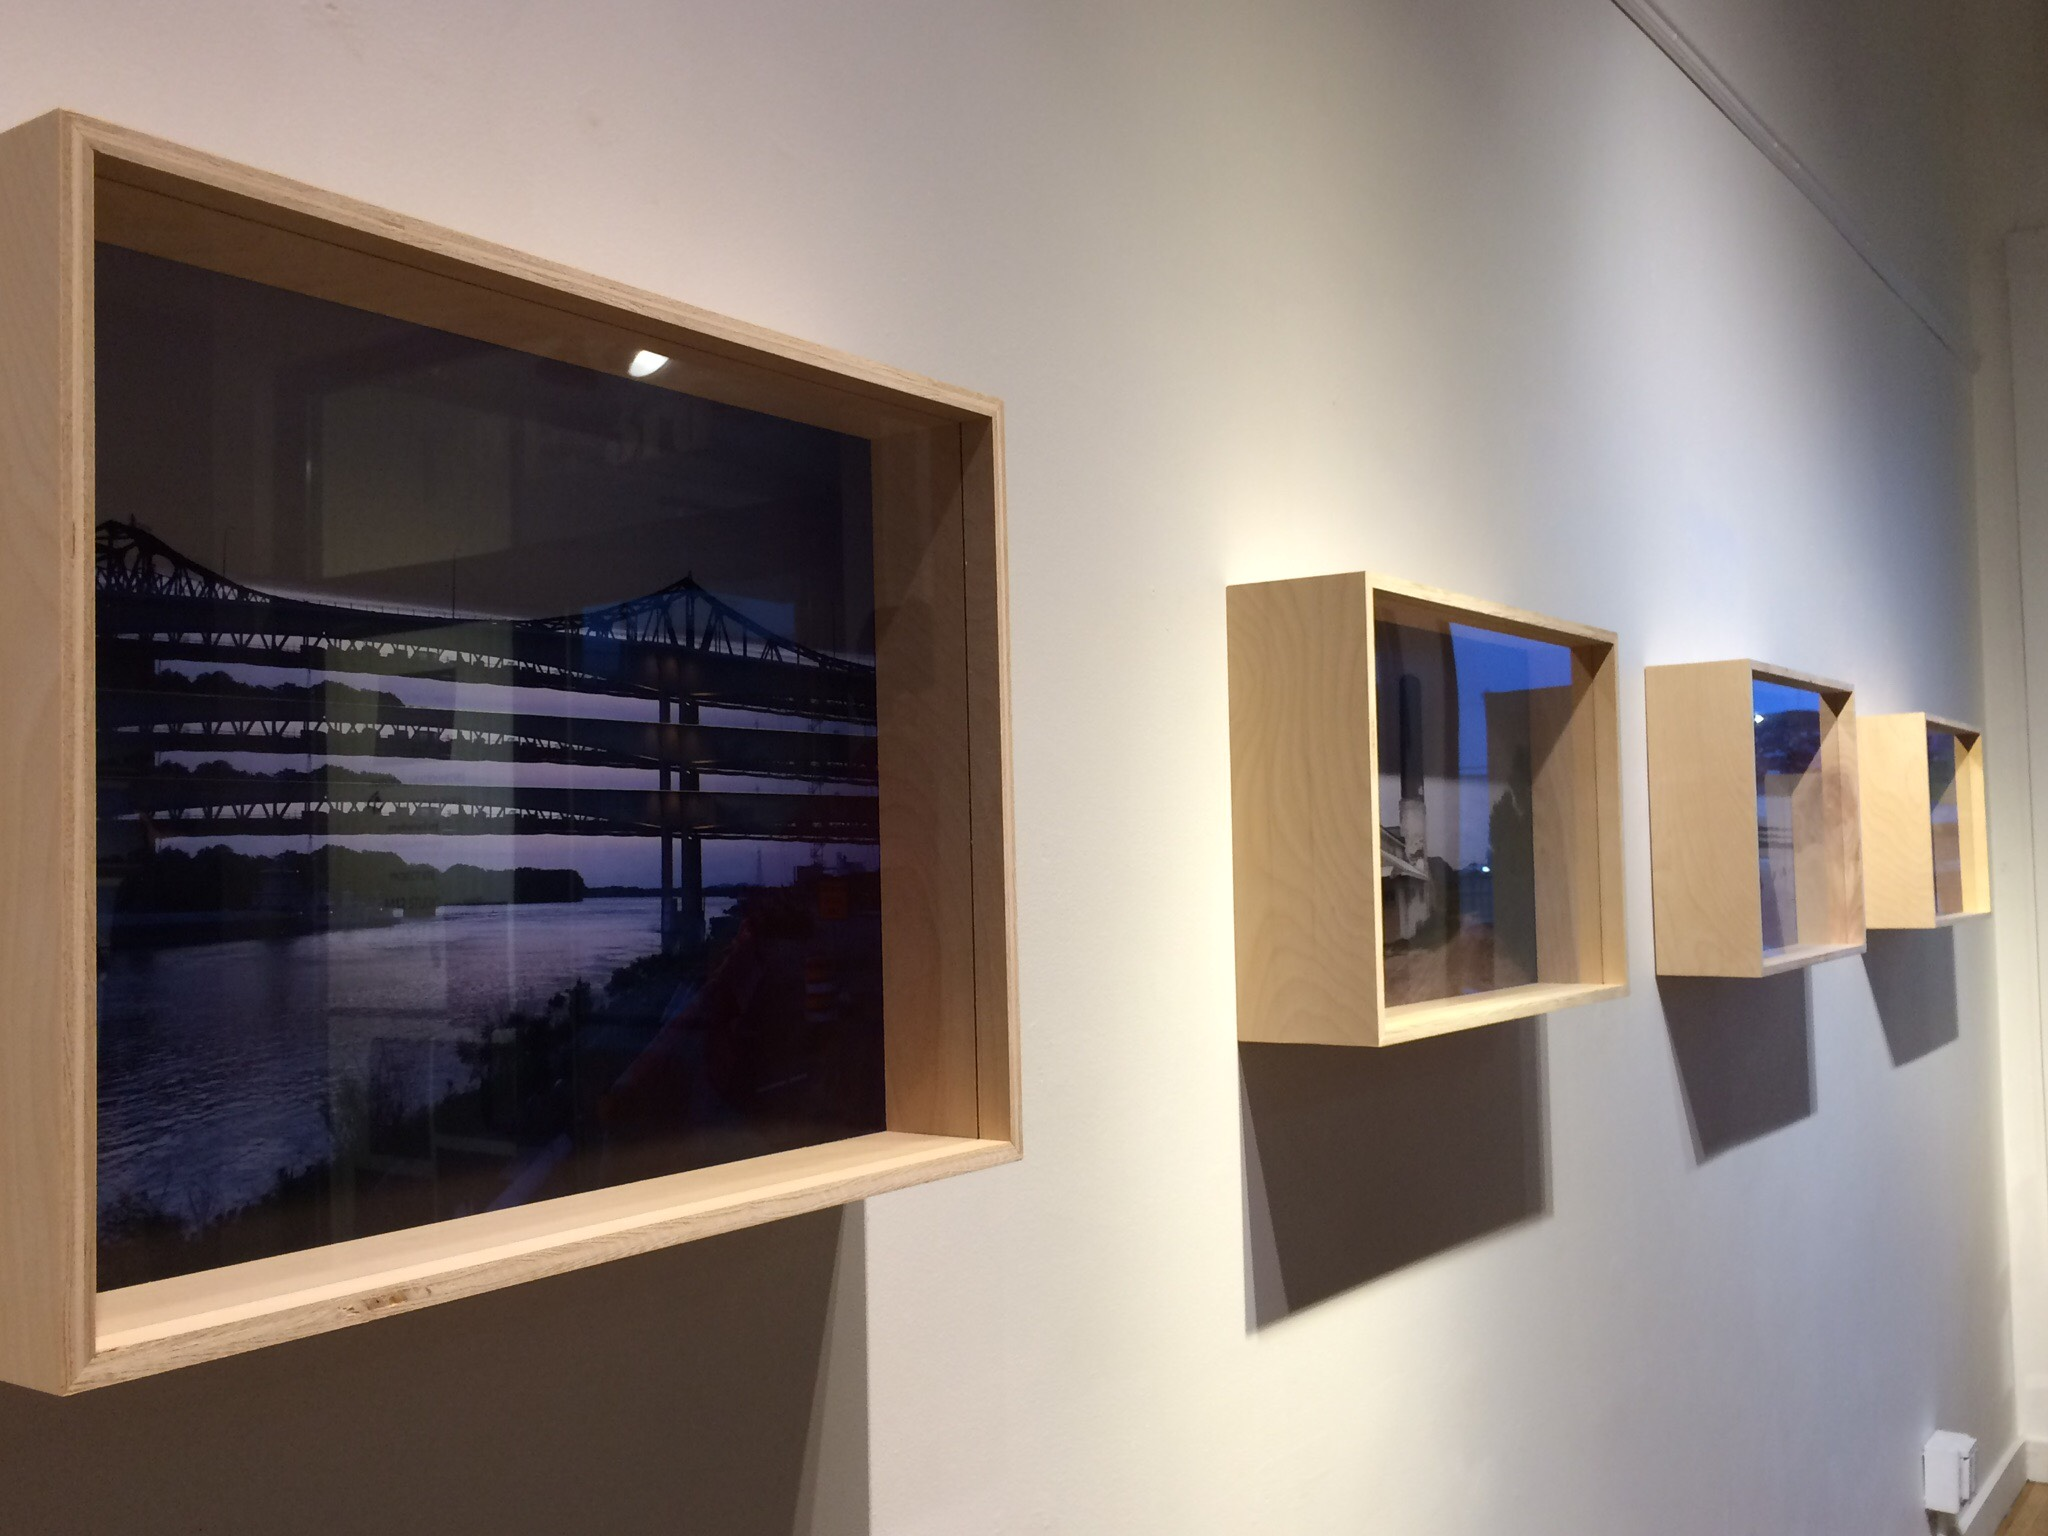 Caption: Reflections of Light and Living Exhibit, Credit: Kelli Jo Knobloch